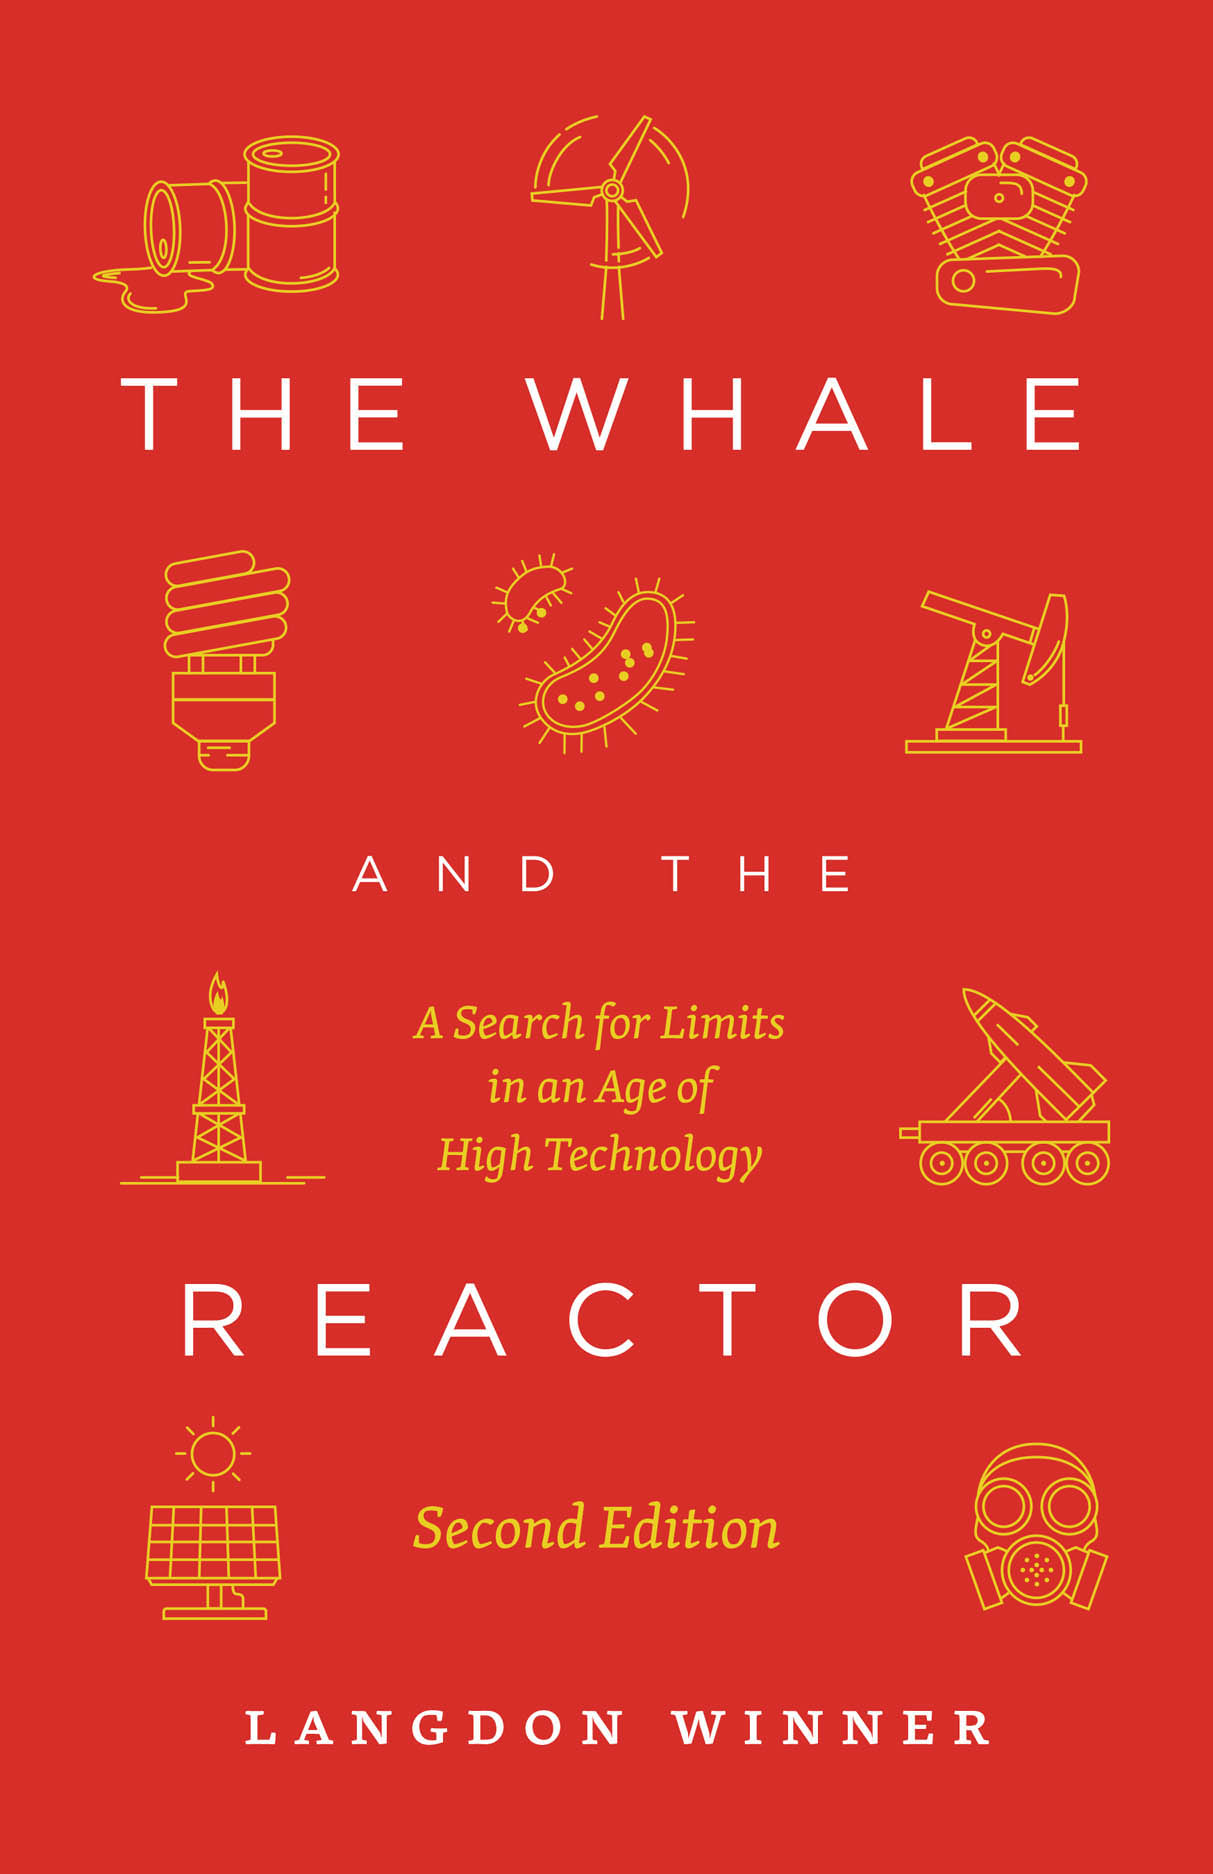 The Whale and the Reactor: A Search for Limits in an Age of High Technology, Second Edition